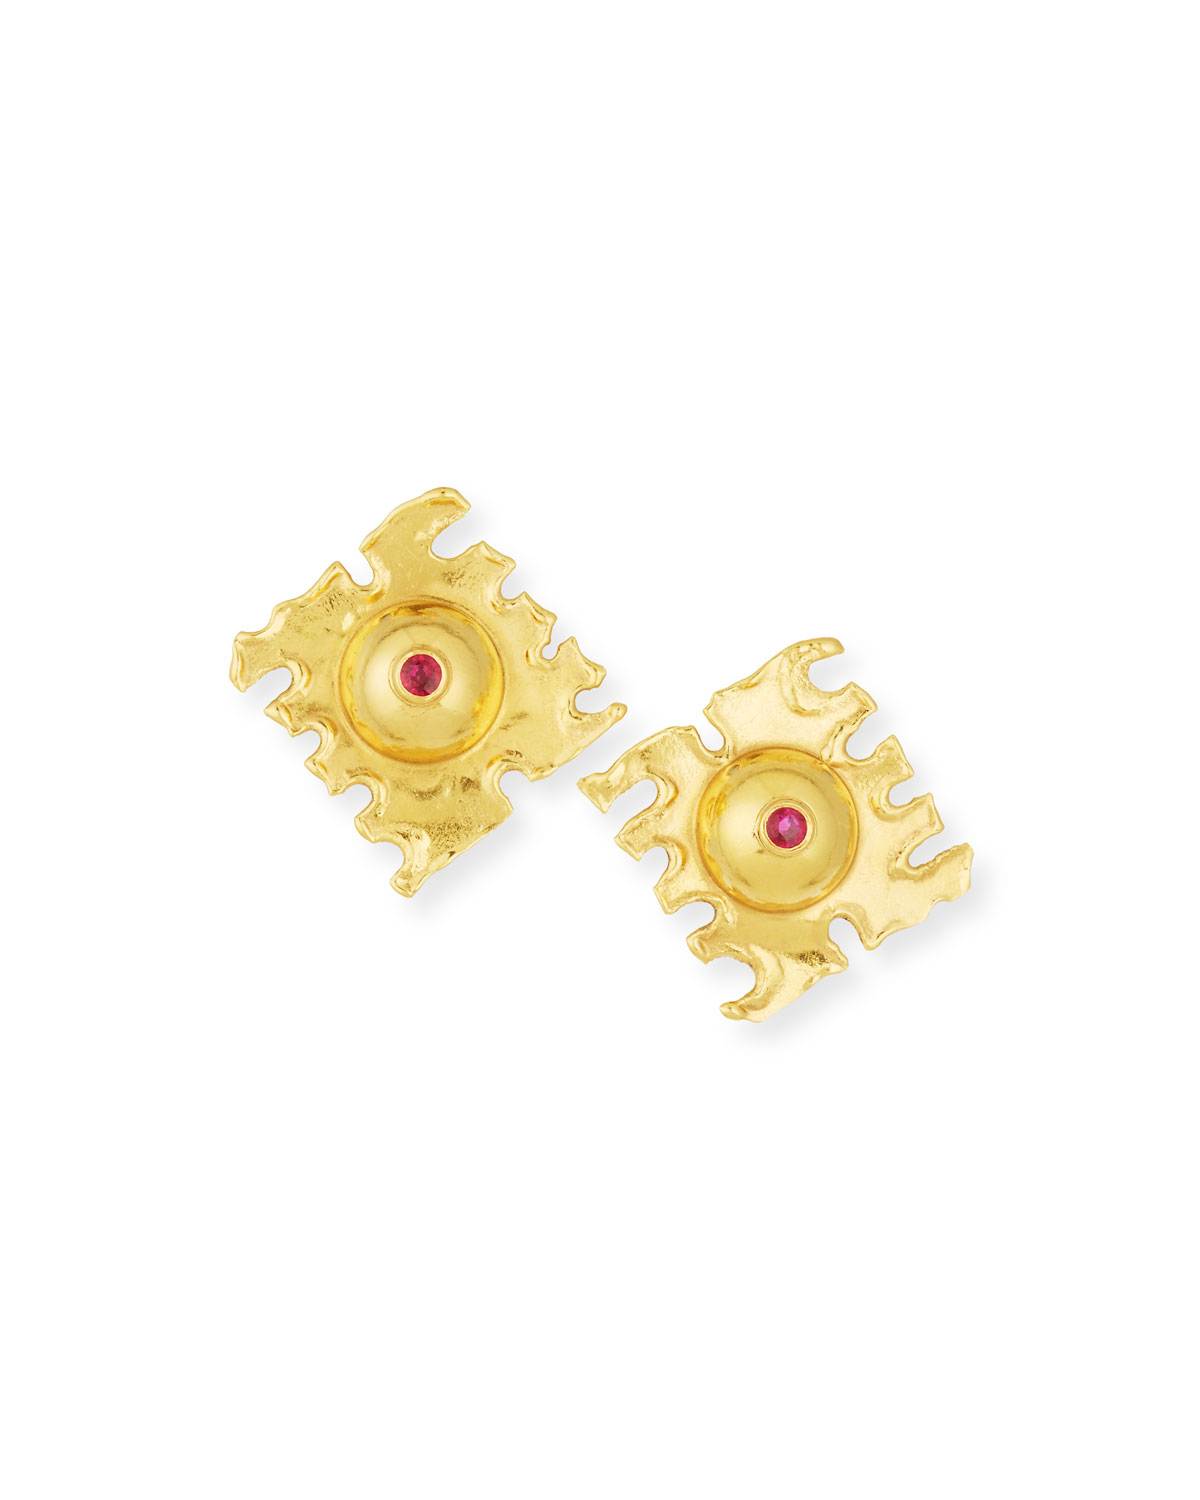 JEAN MAHIE De Coupe 22K Gold Earrings With Rubies